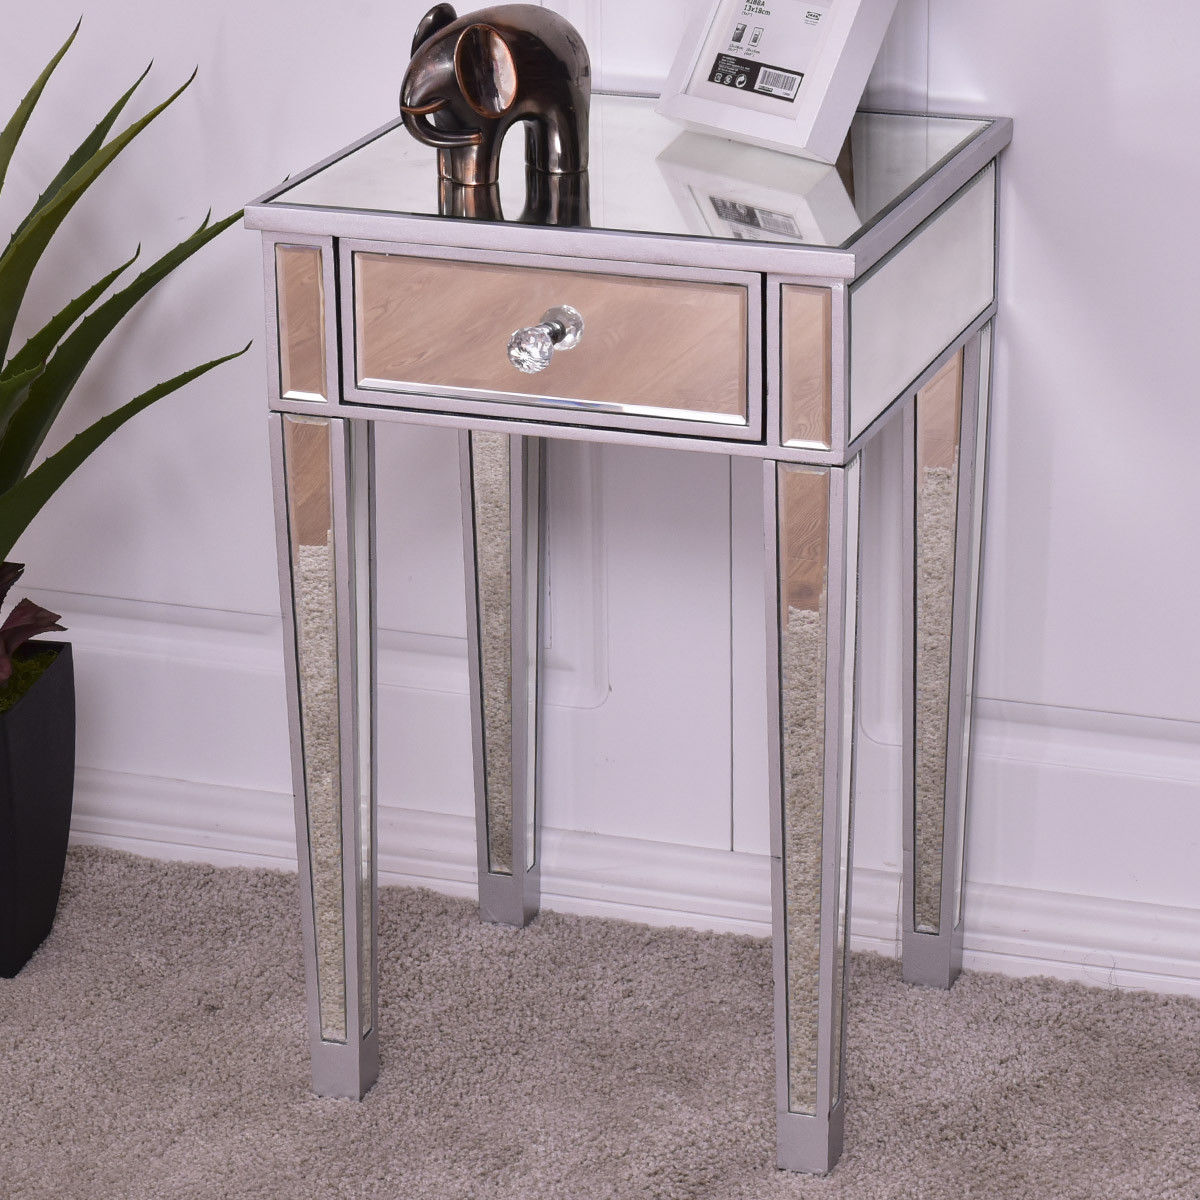 Giantex Mirrored Accent Table Nightstand End Table Luxury